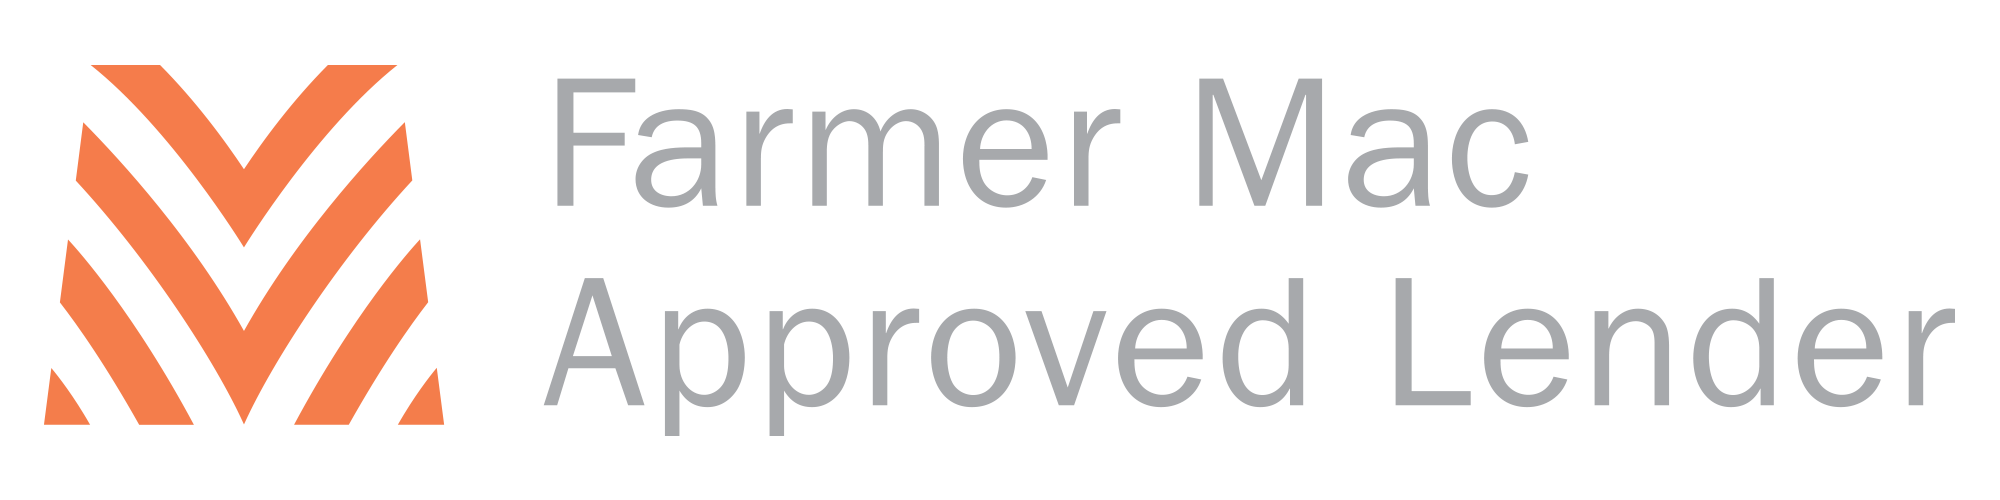 Farmer Mac Approved Lender Logo